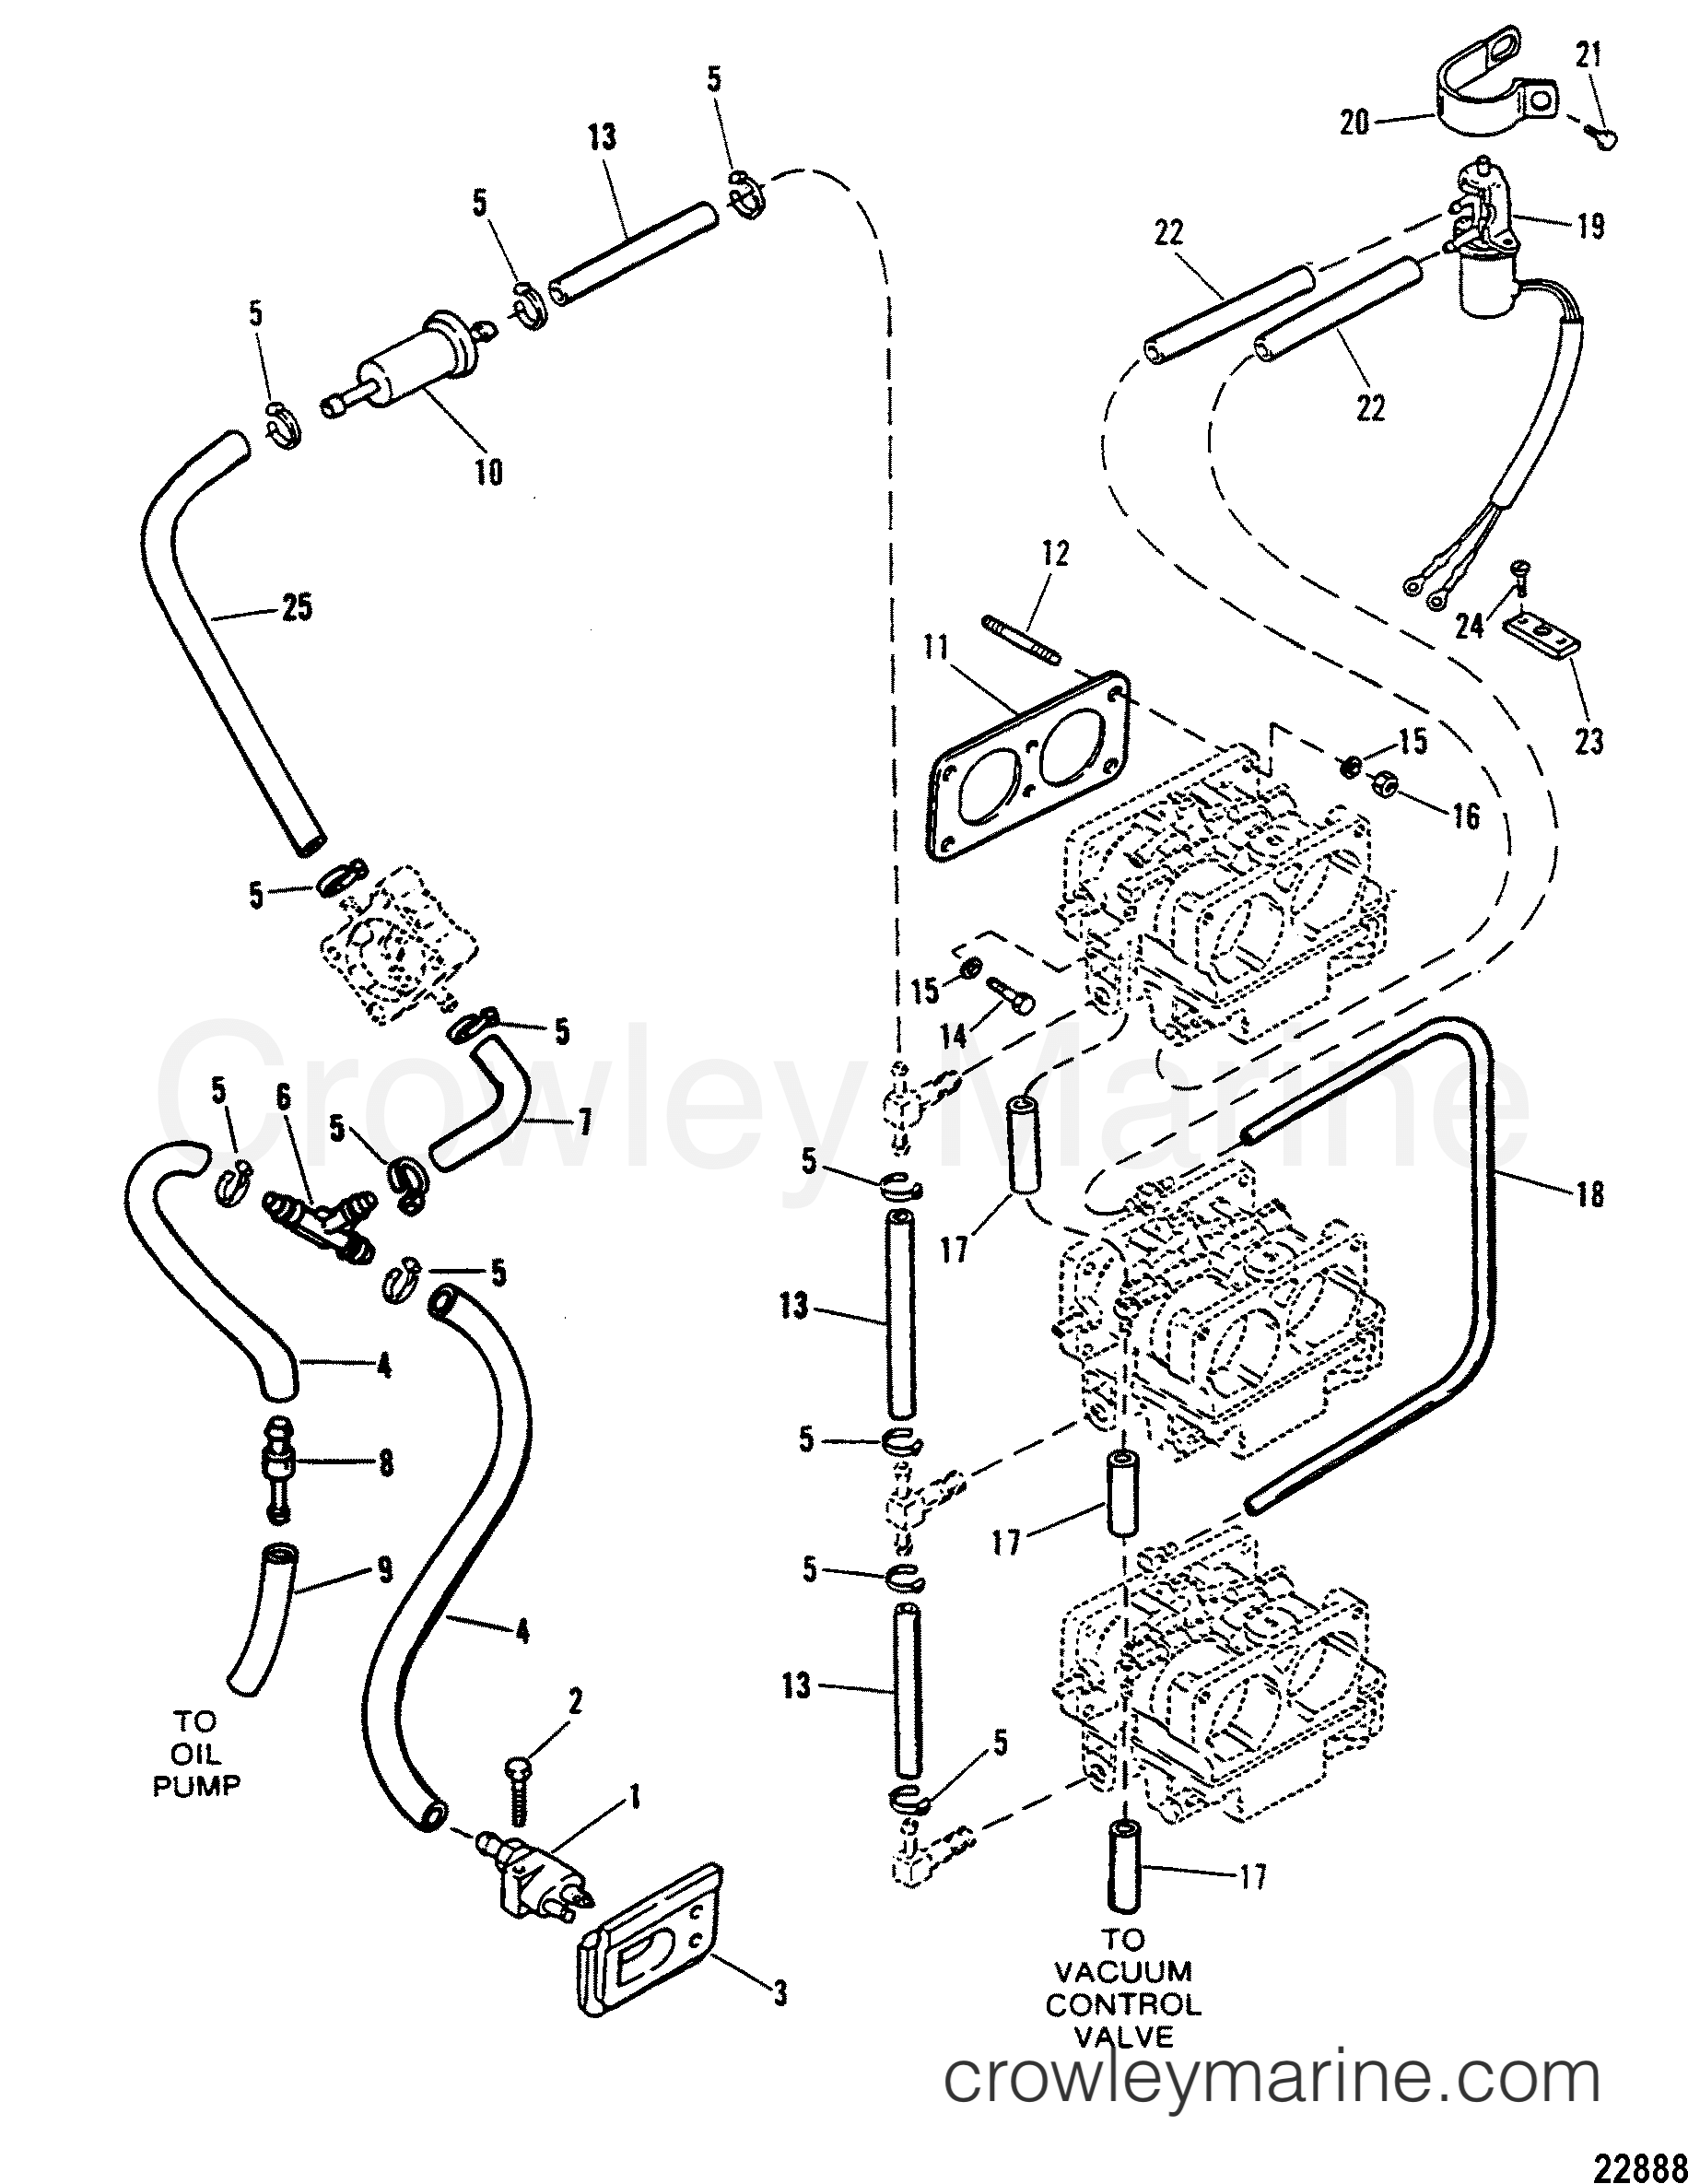 Mercury Fuel Line Diagram Free Wiring For You 100hp Mariner Wire Lines Use With Wmh 12a B Thru 28 Carburtors Copper Connector Marine 100 Hp